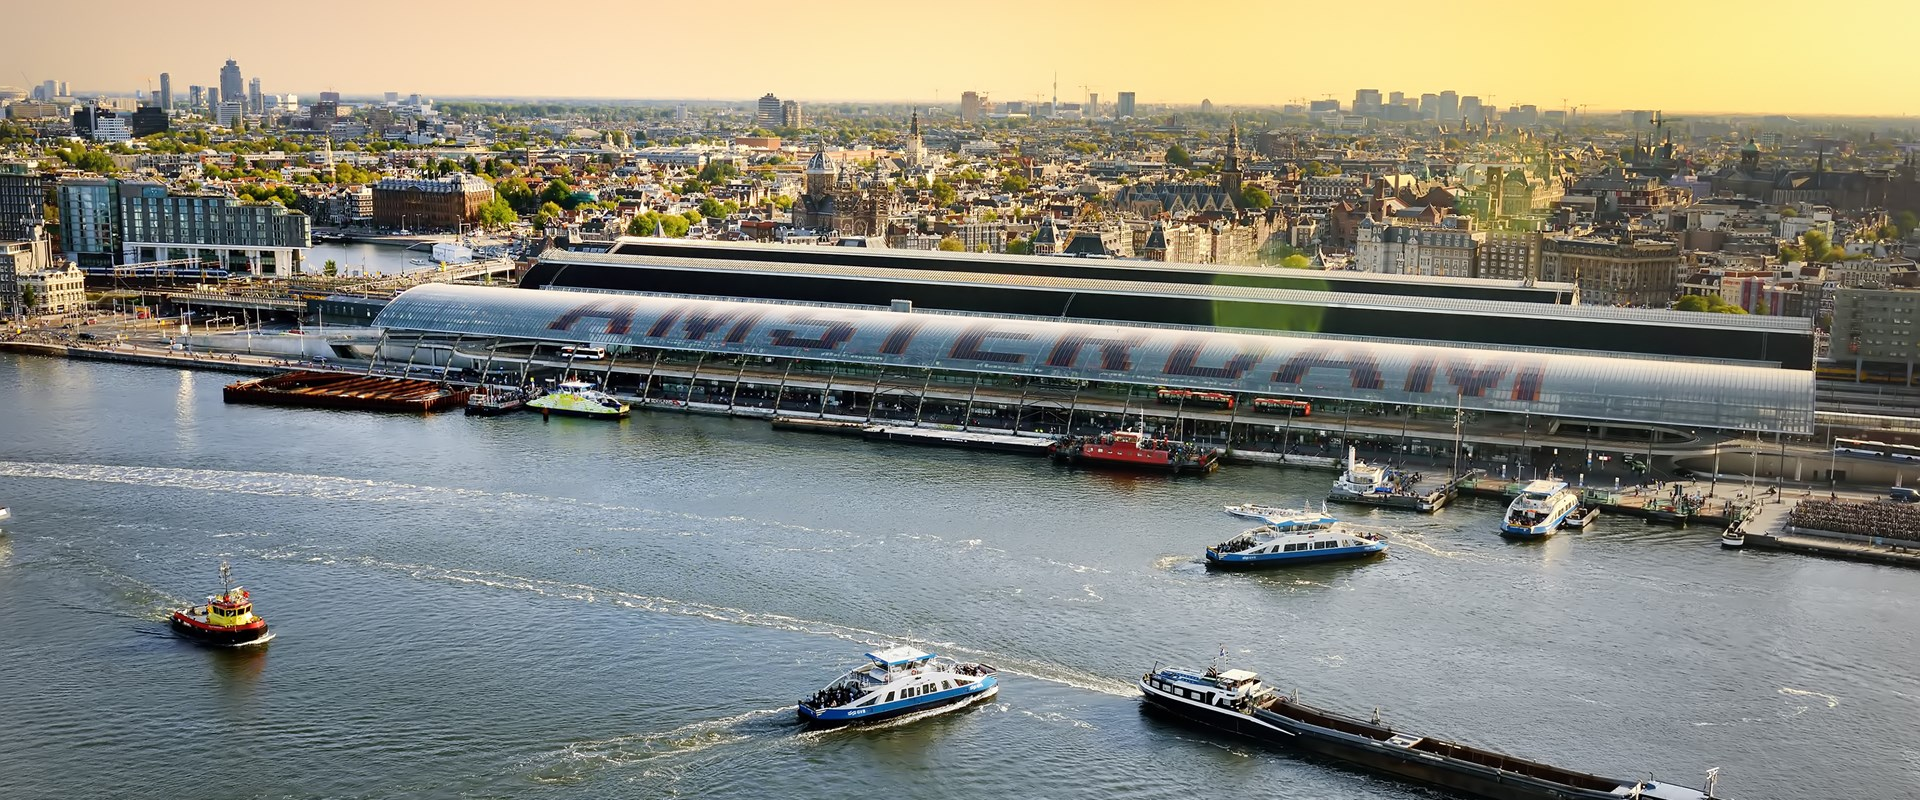 Inland shipping Amsterdam